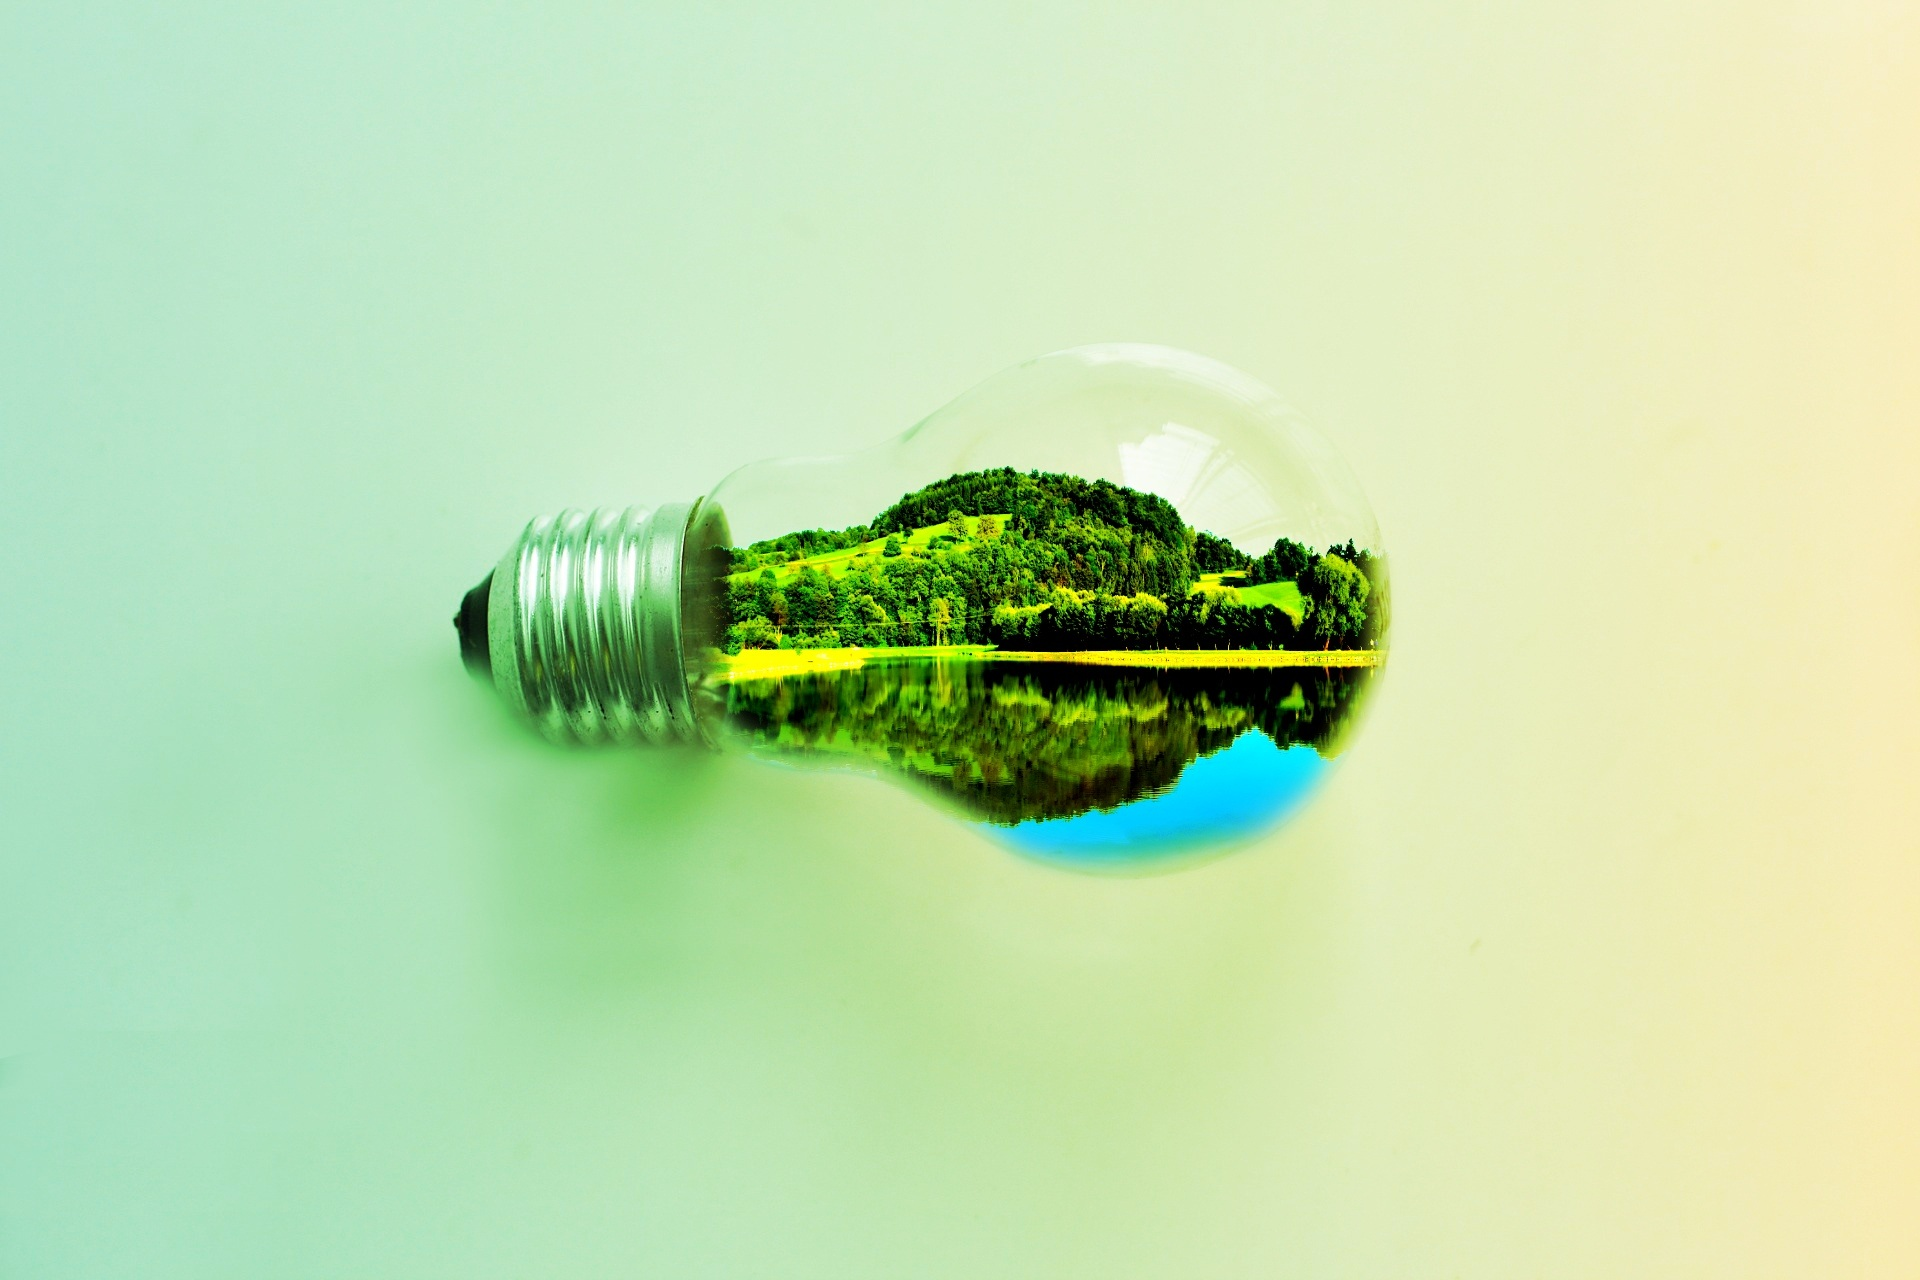 A Light bulb with the world in it